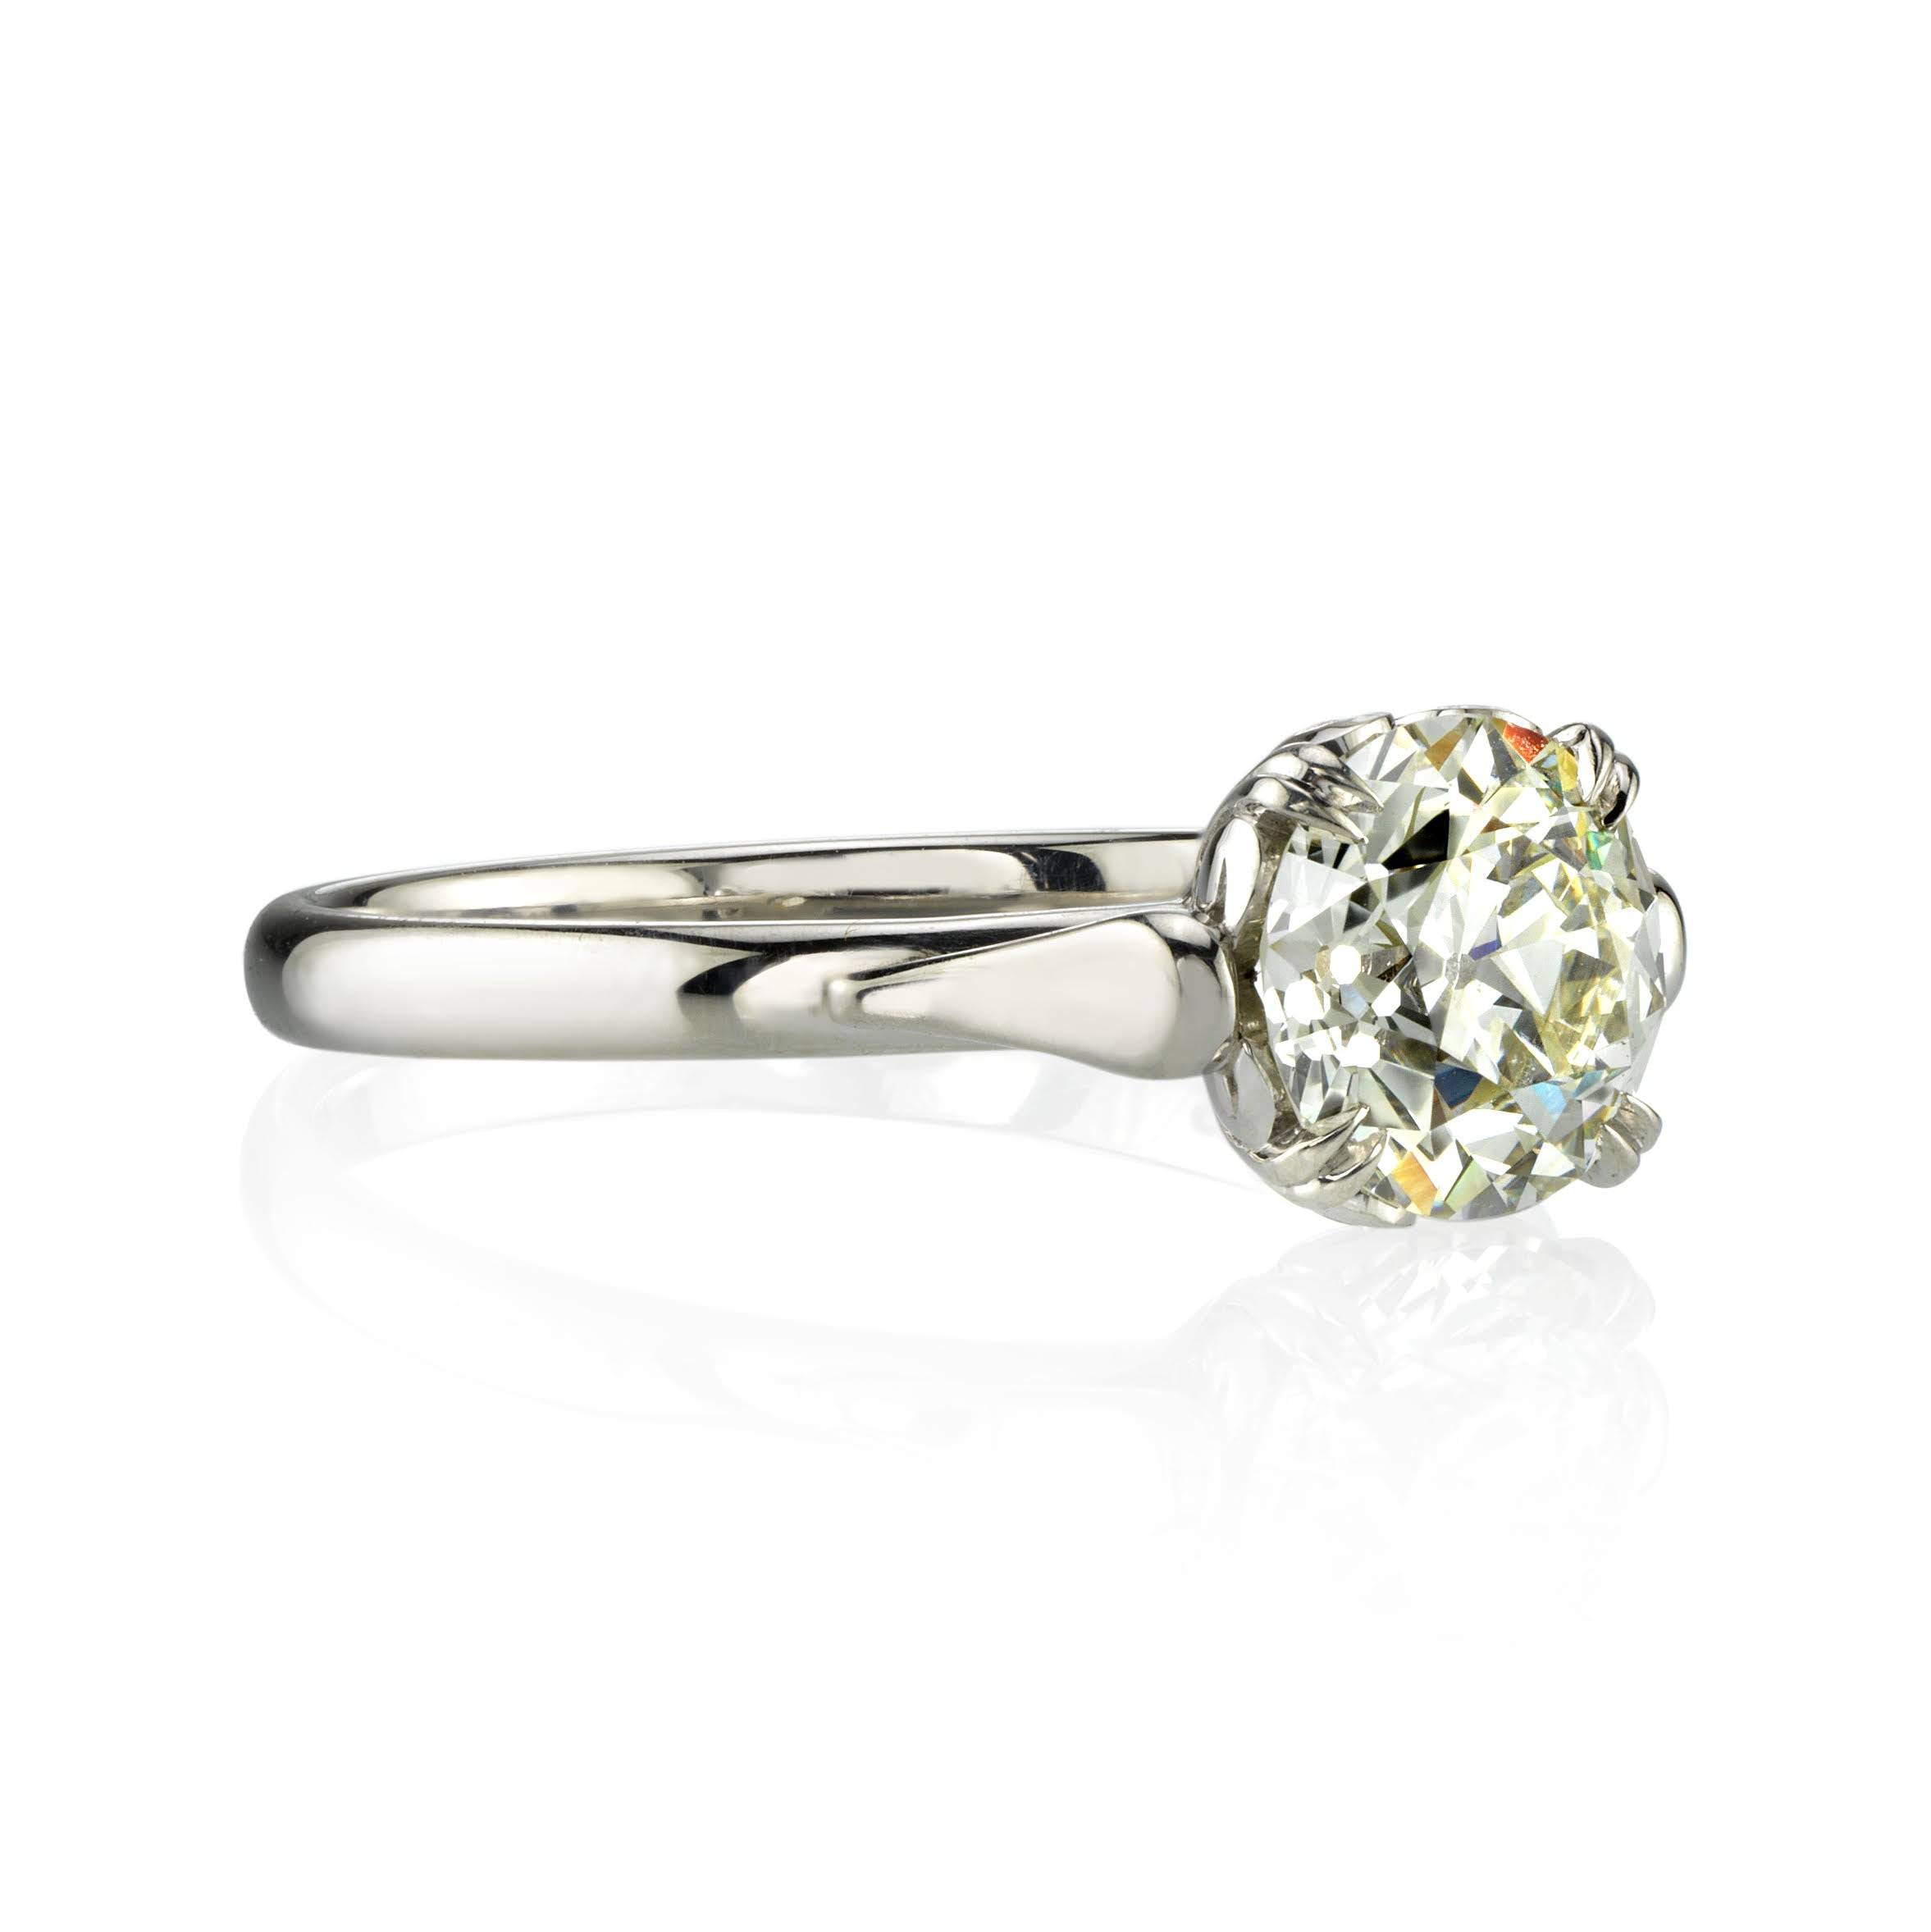 'Sydnee' platinum solitaire diamond ring